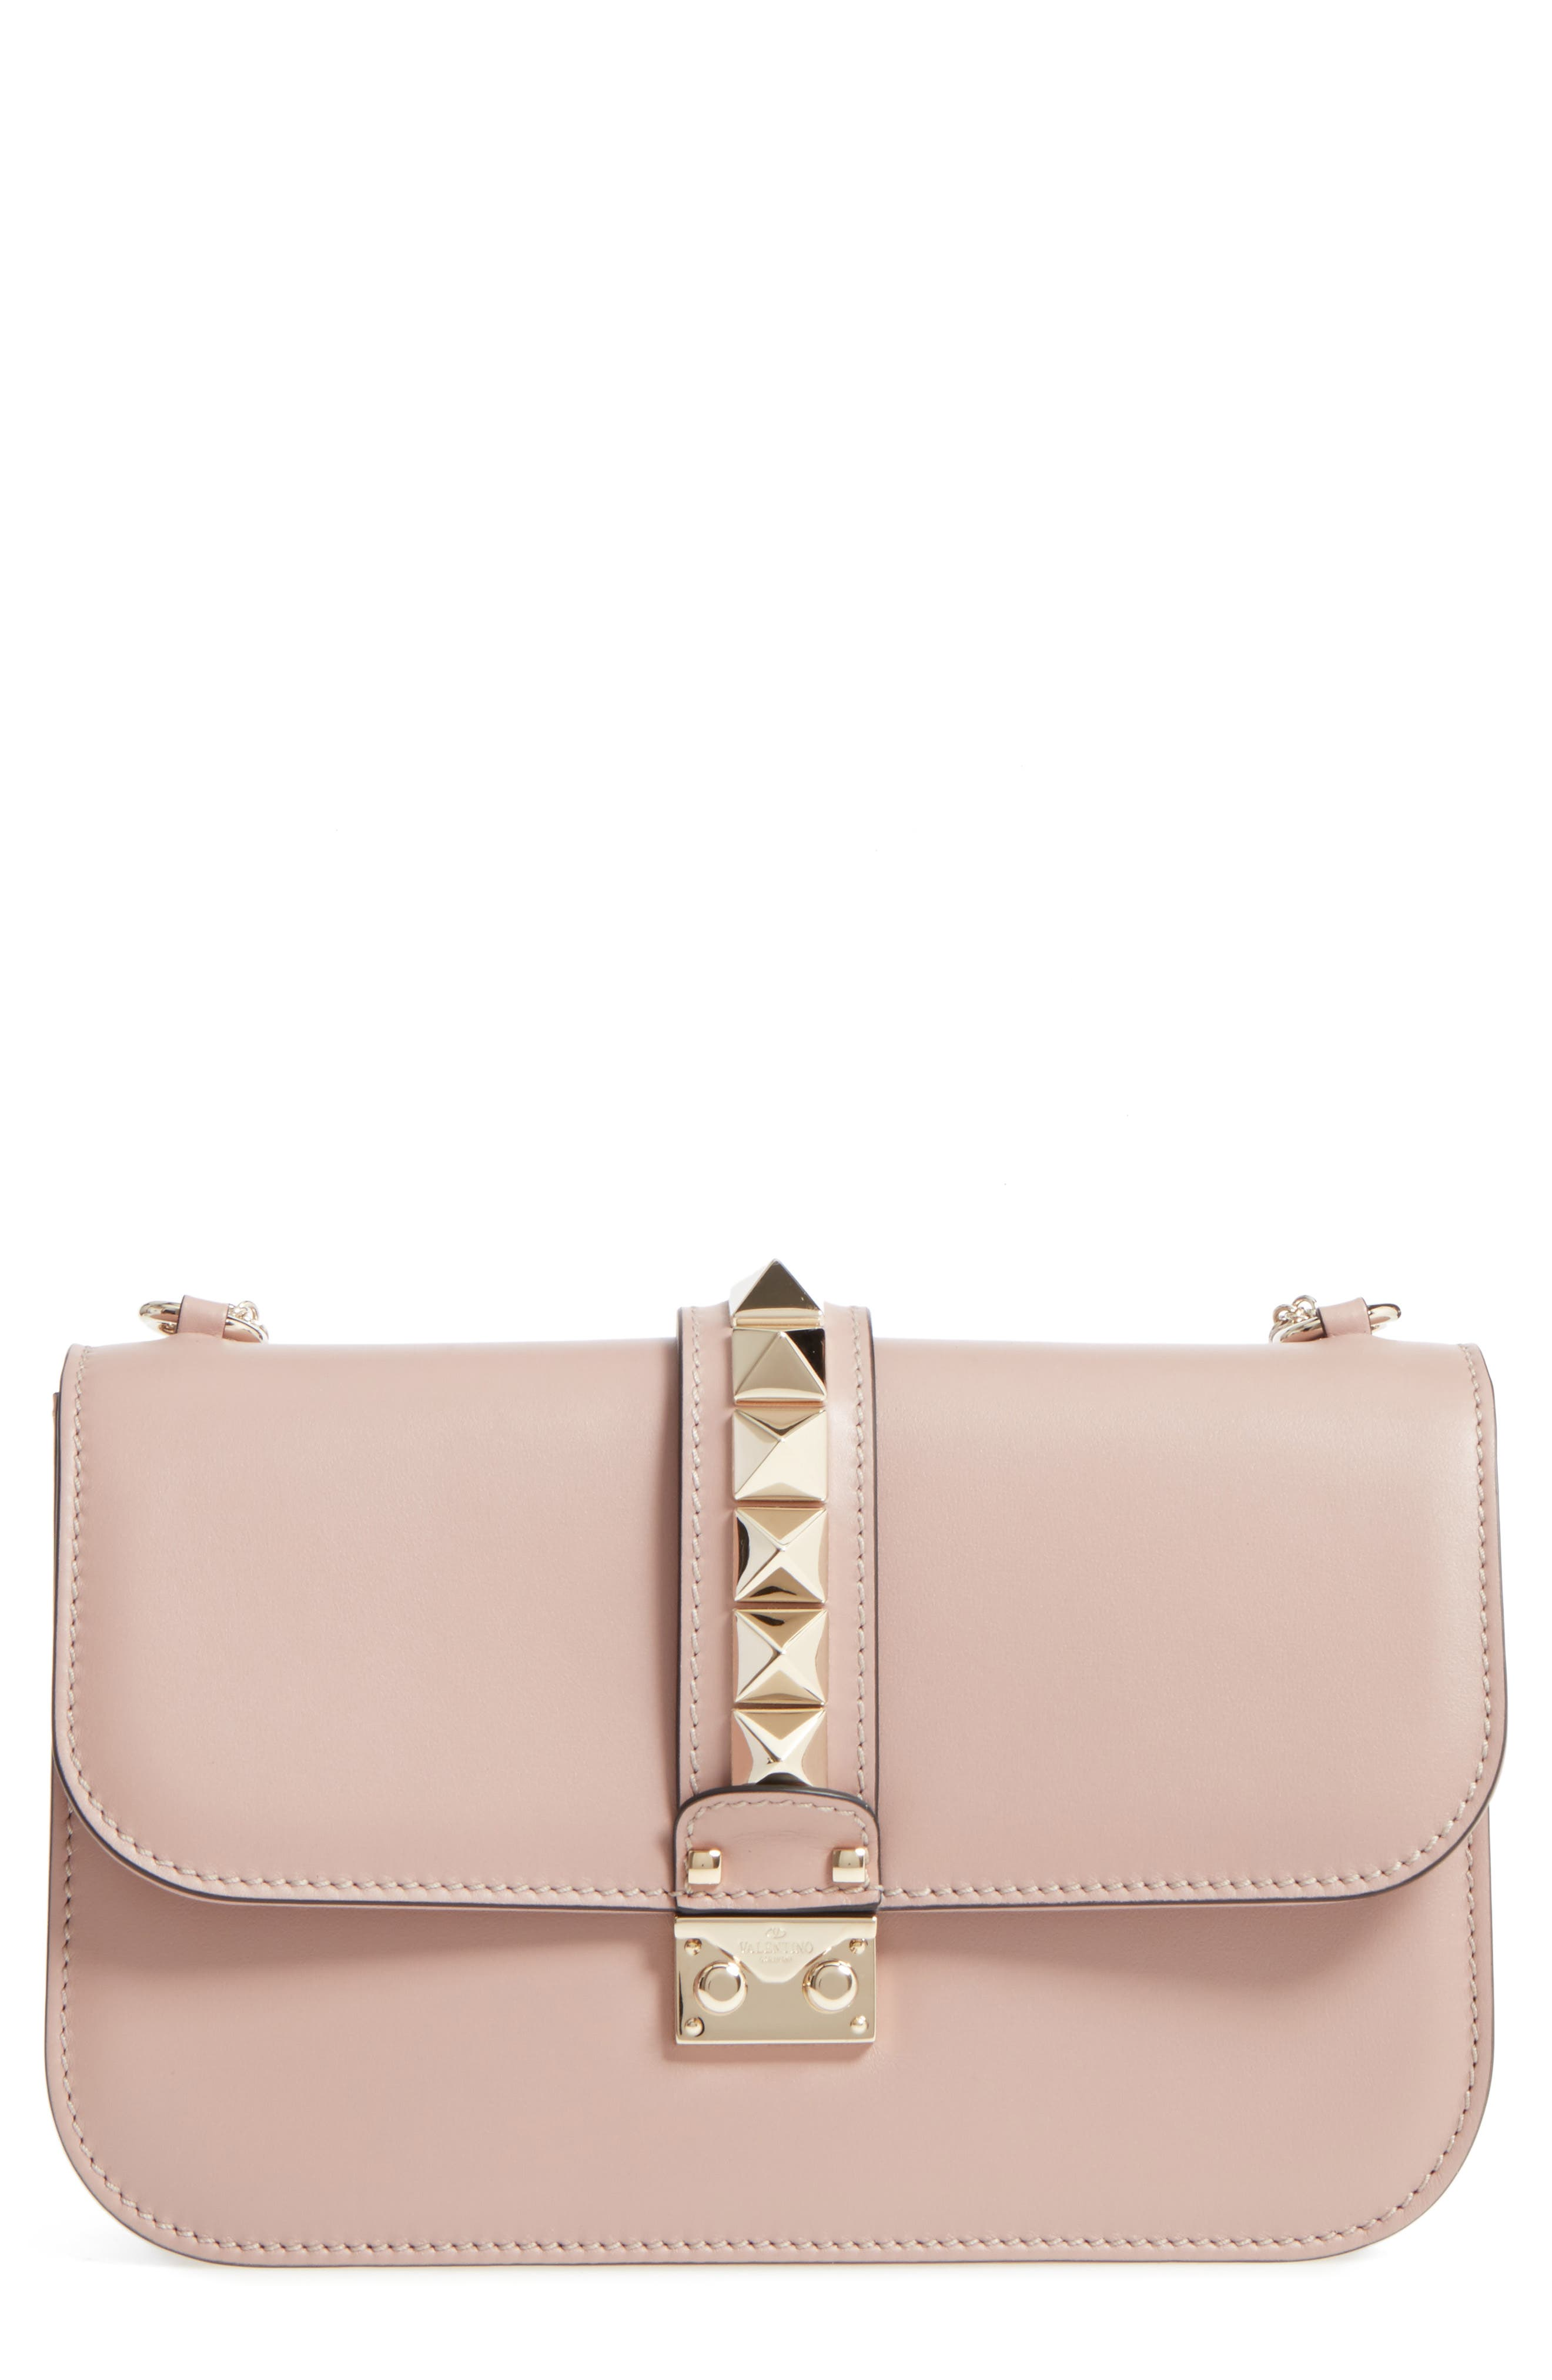 Valentino  'MEDIUM LOCK' SHOULDER BAG - BEIGE